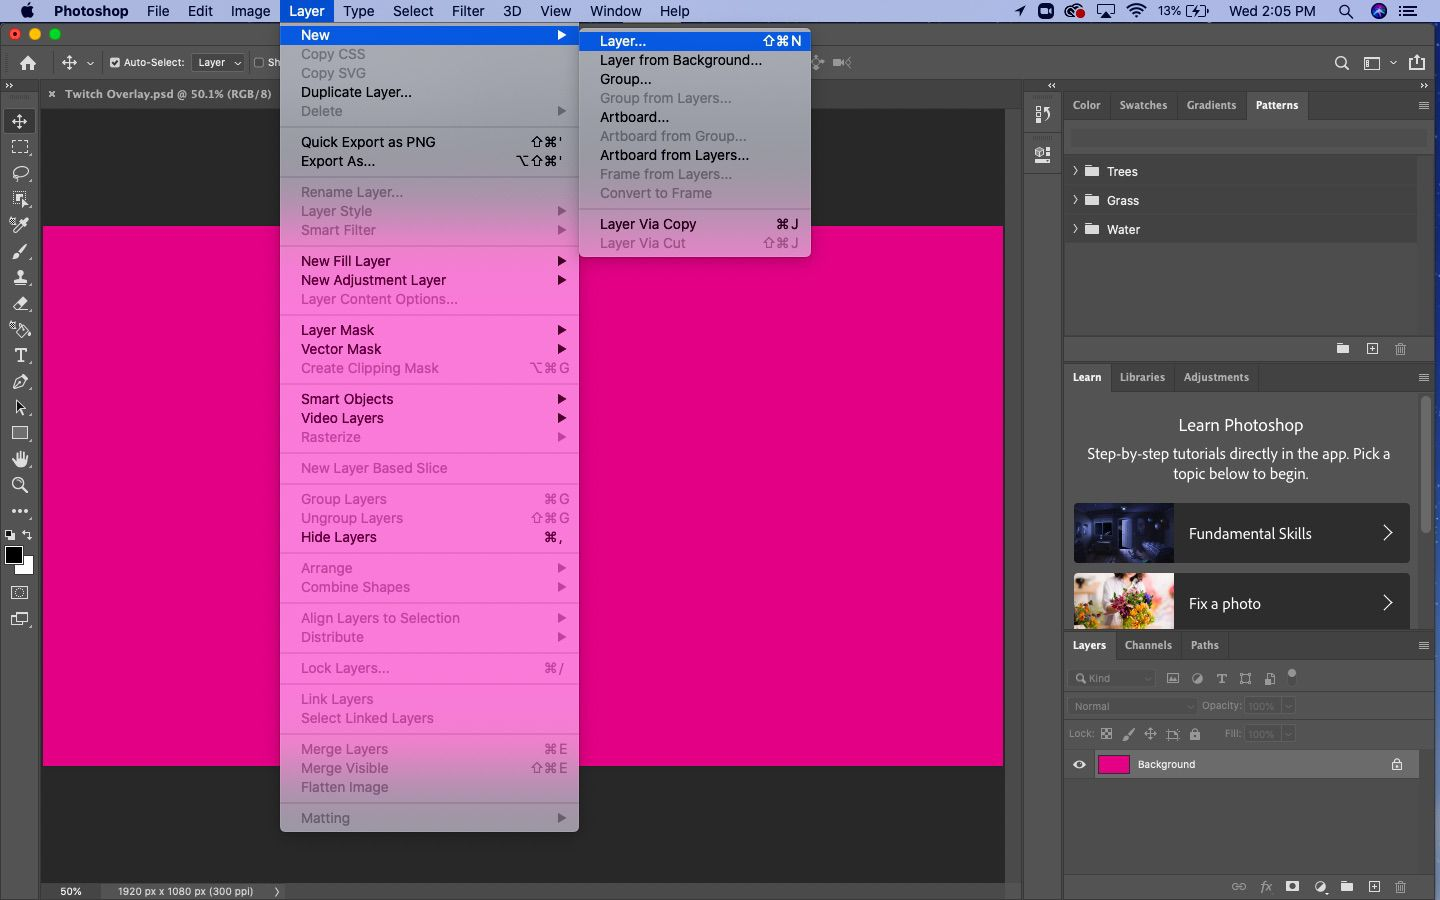 From the top menu, select Layer > New > Layer.